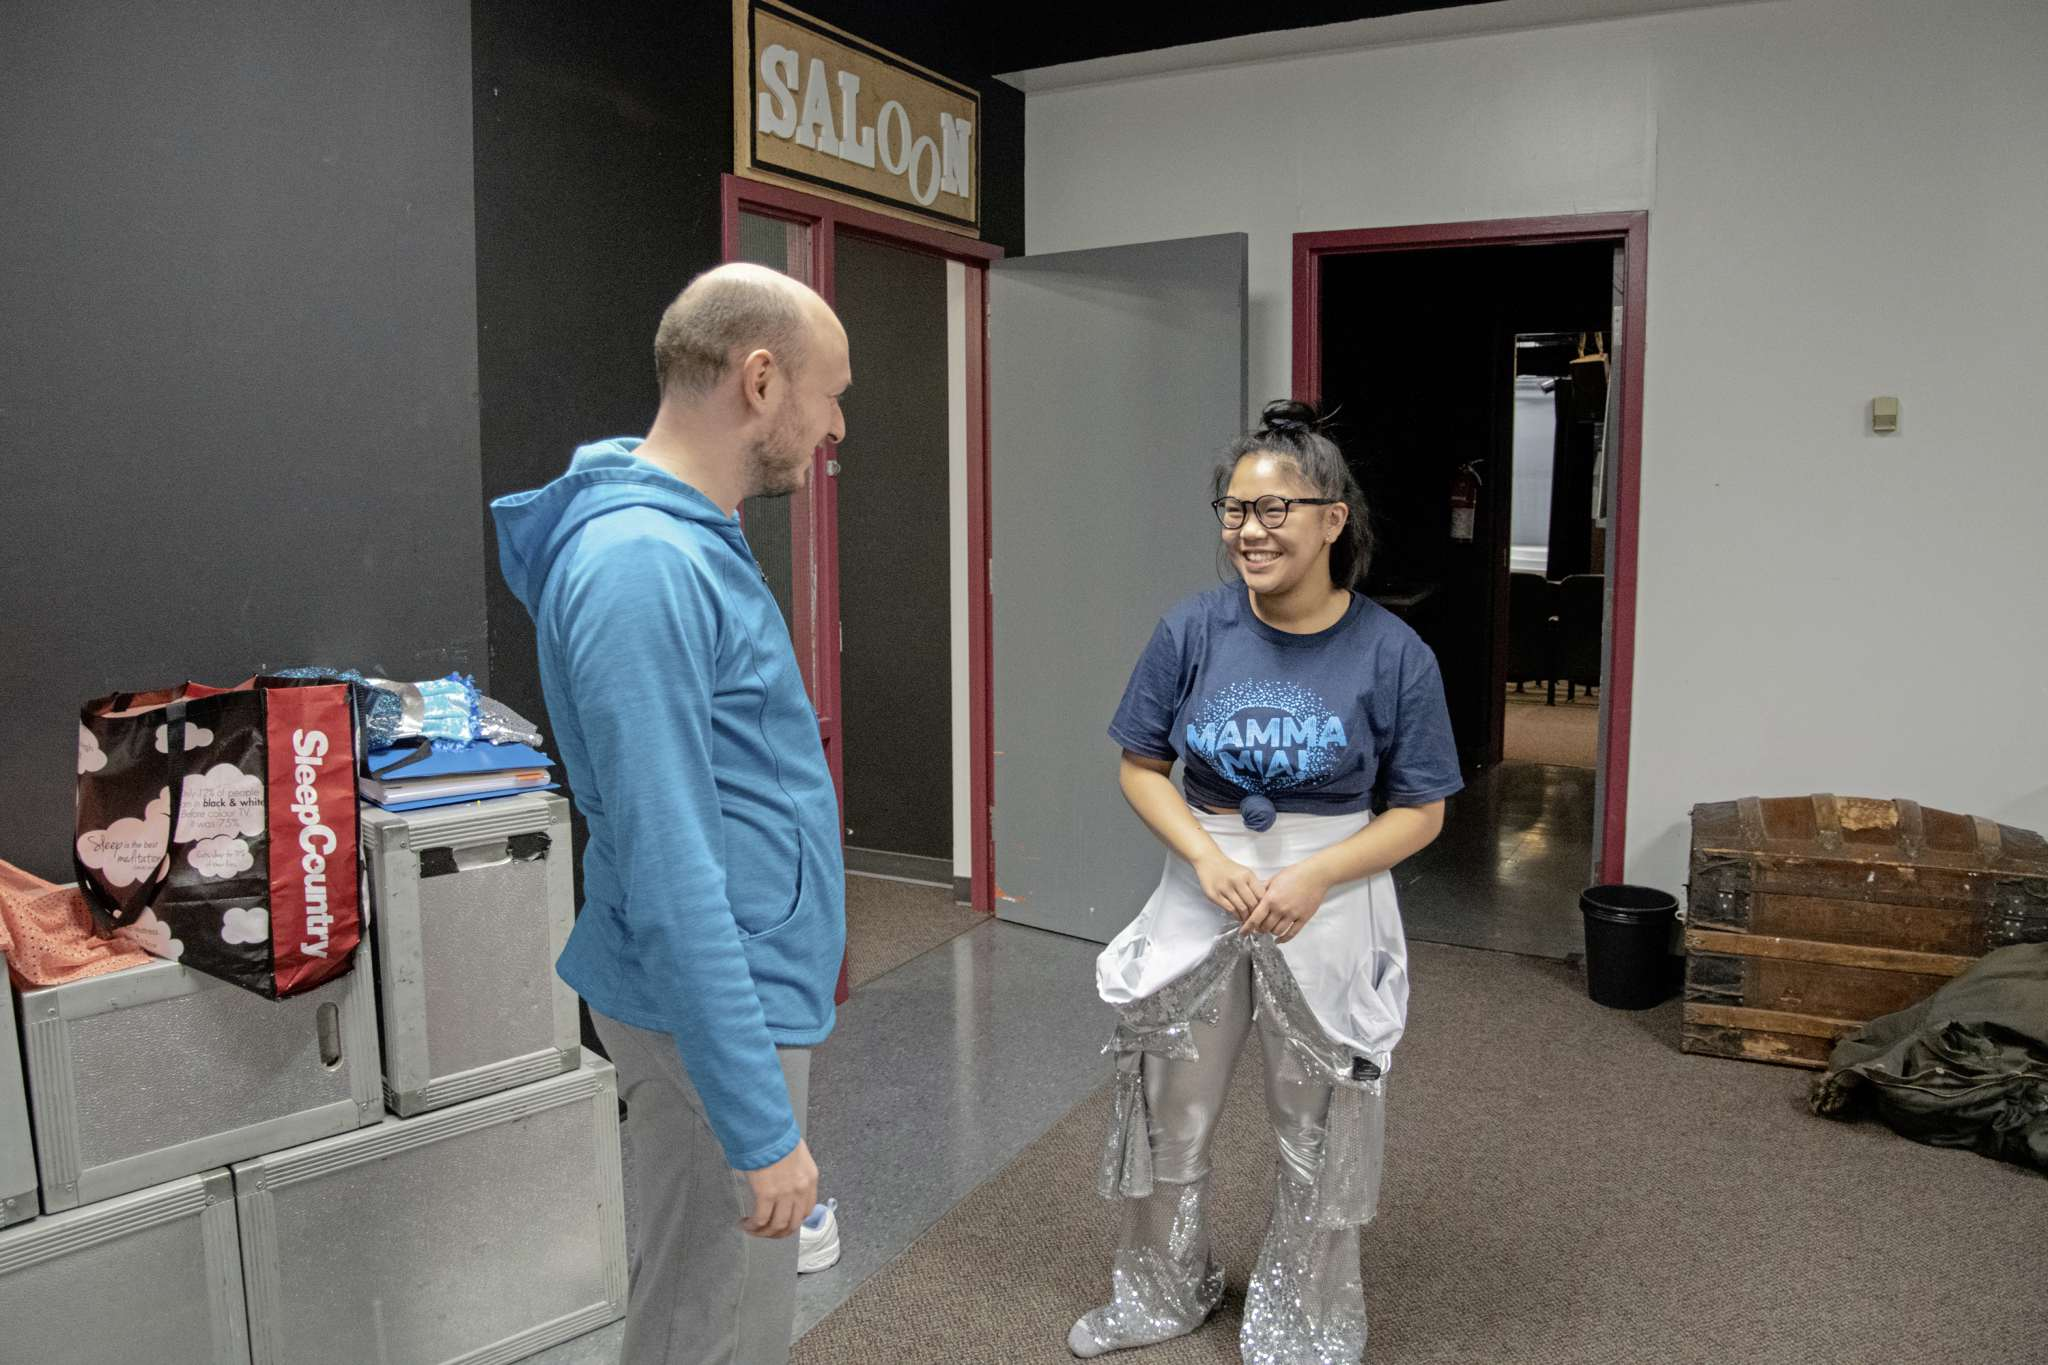 Westwood Collegiate student Charlize Tan (right) chats with Mamma Mia! co-director Brian Toms while she tries on a costume for the productions final number.